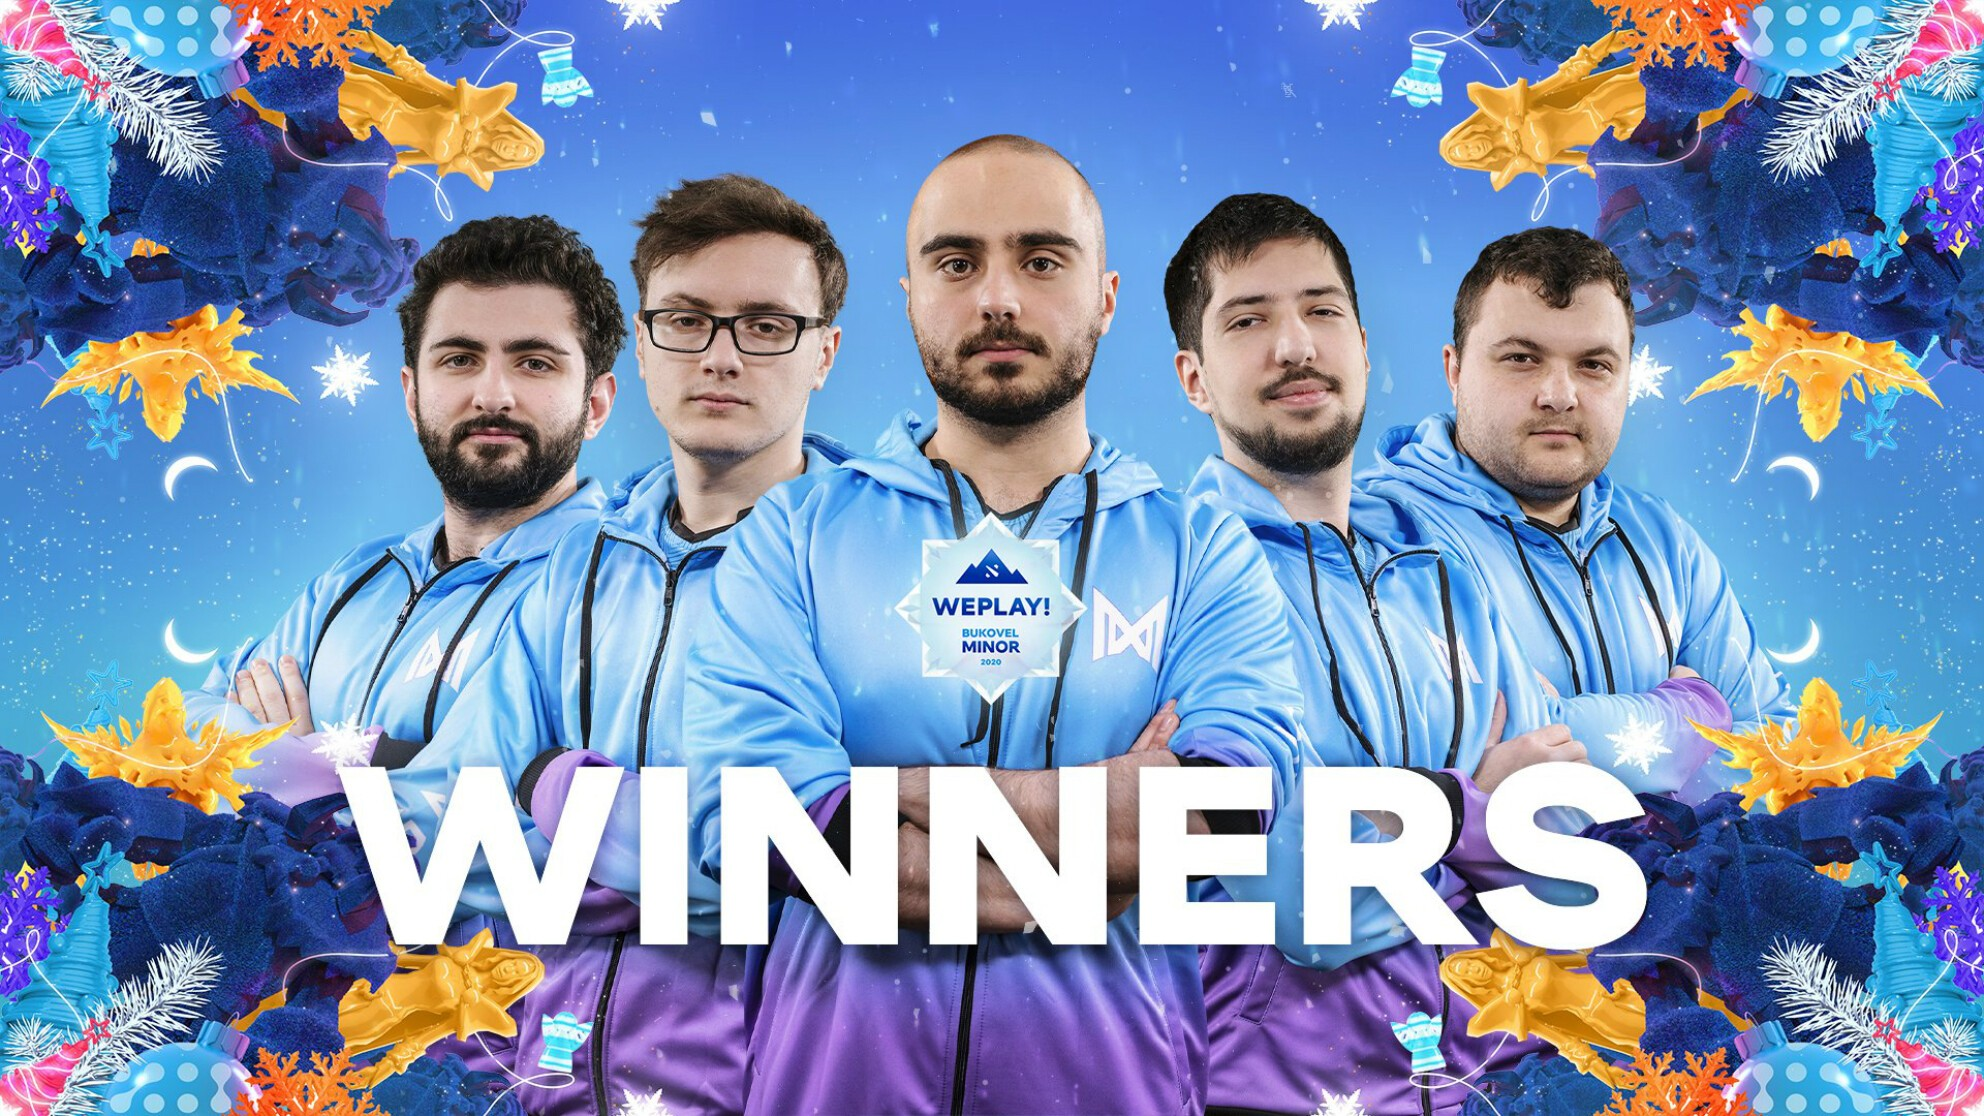 Team Nigma is the winner of WePlay! Bukovel Minor 2020!